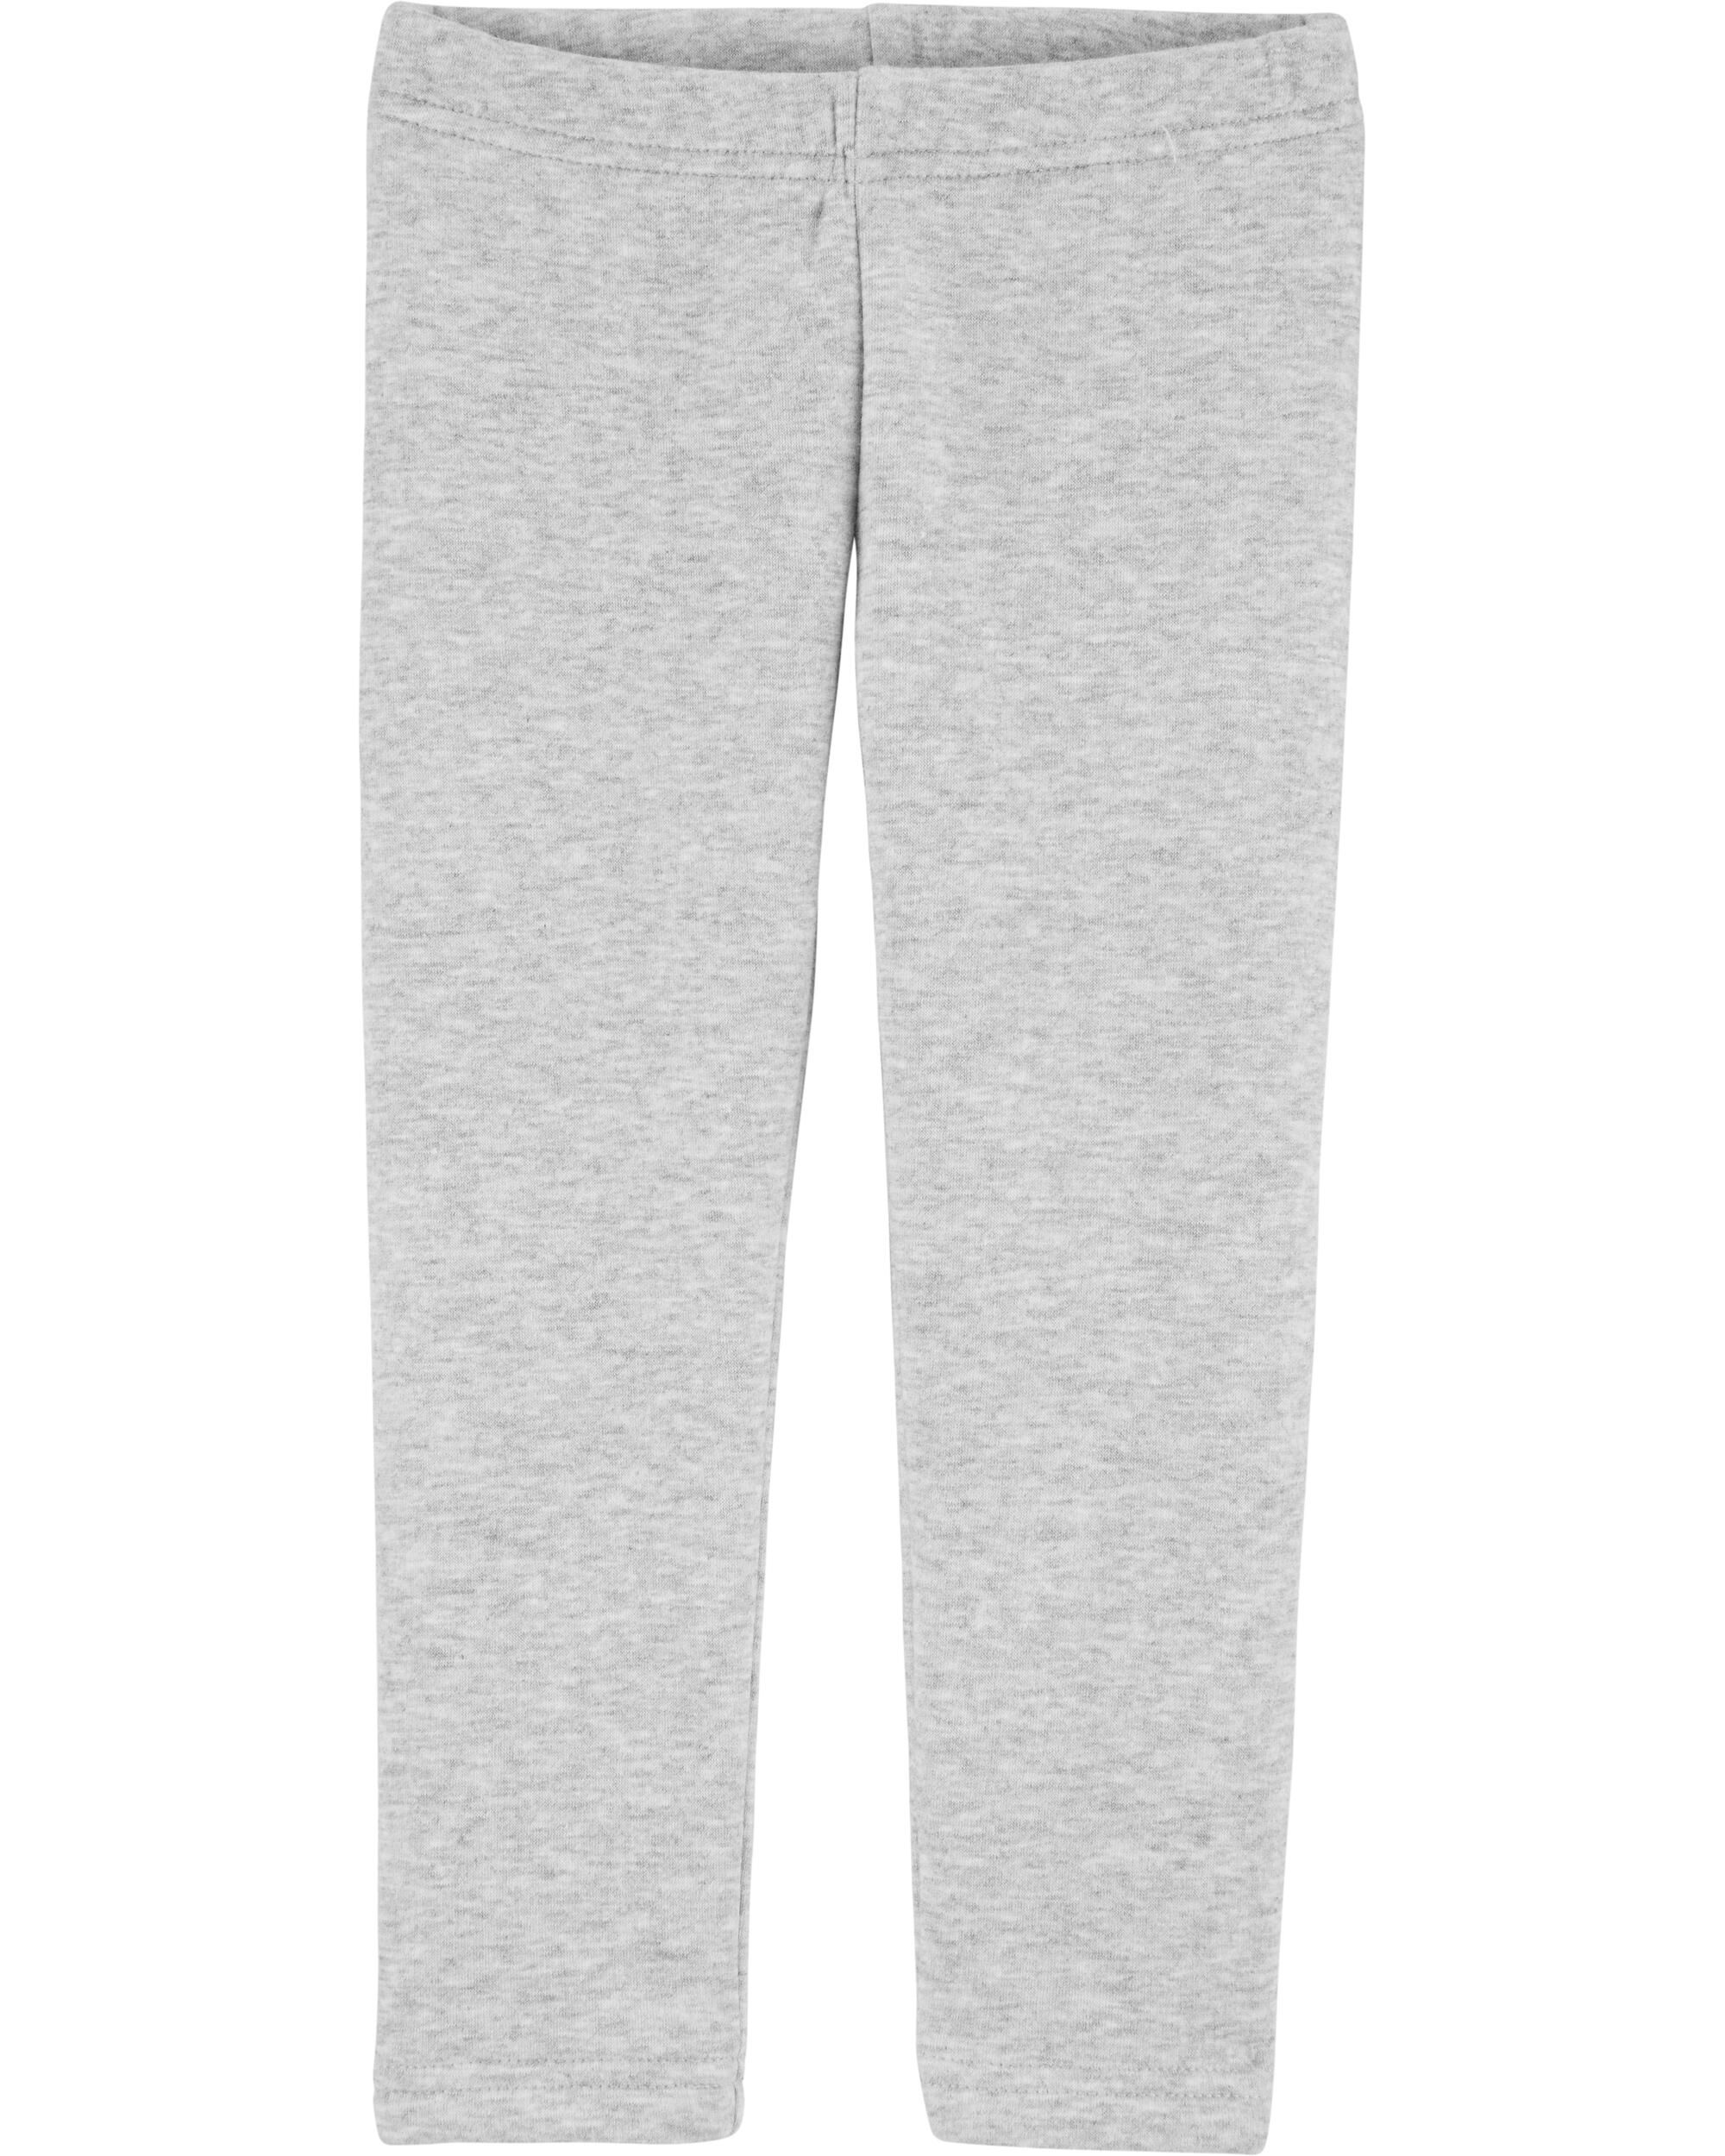 *CLEARANCE* Cozy Fleece Leggings